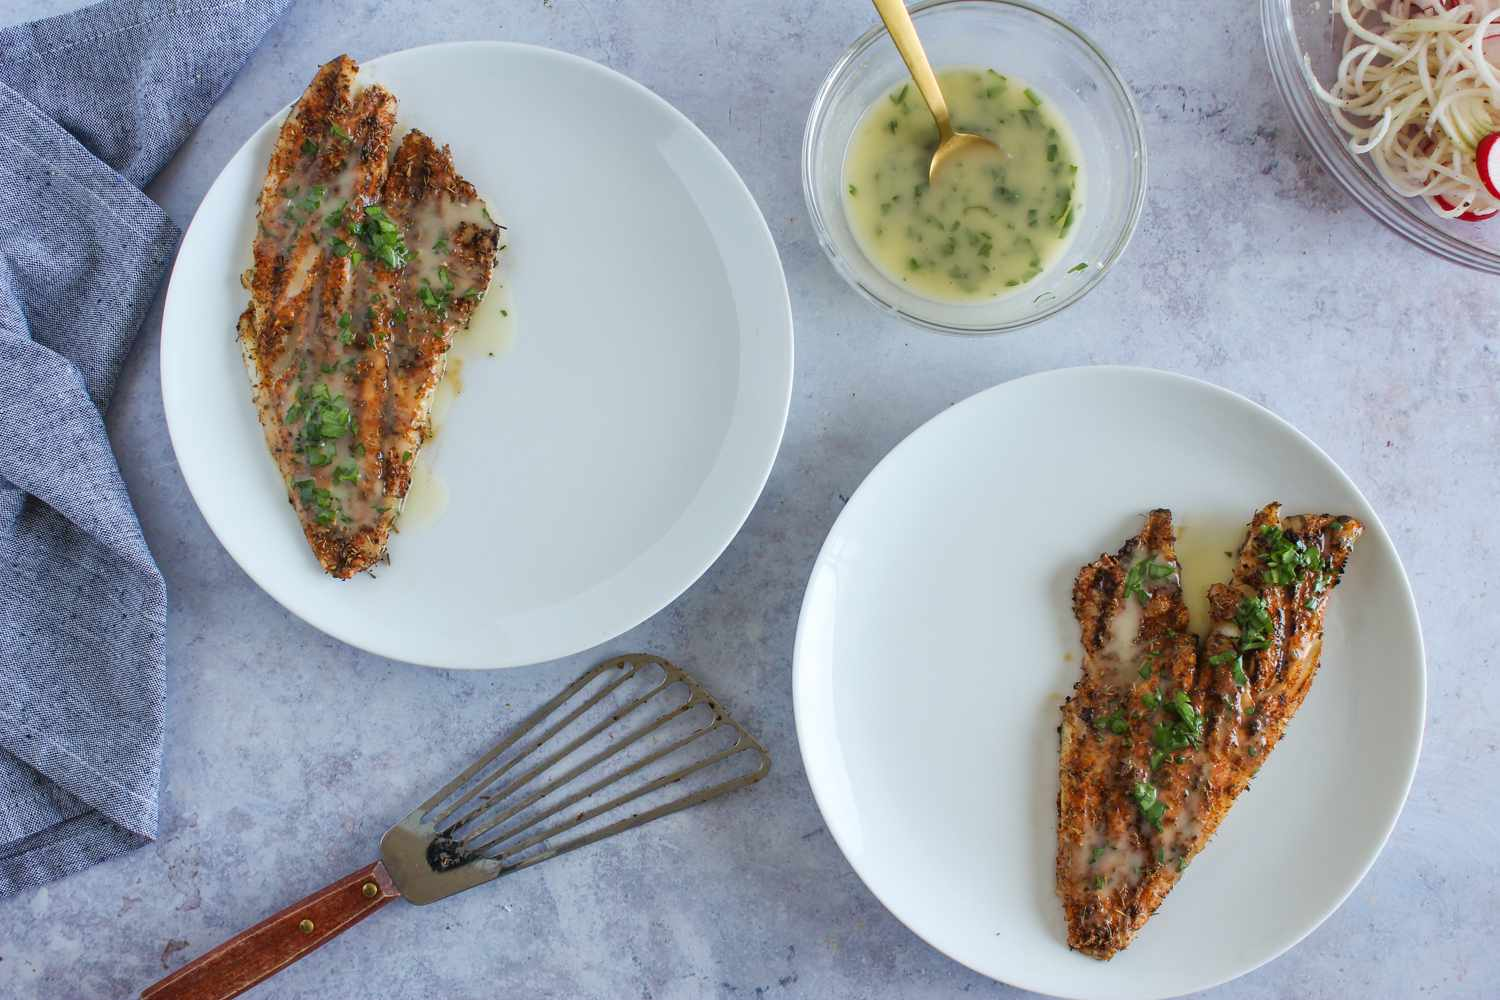 Red snapper on plates with parsley and lemon butter